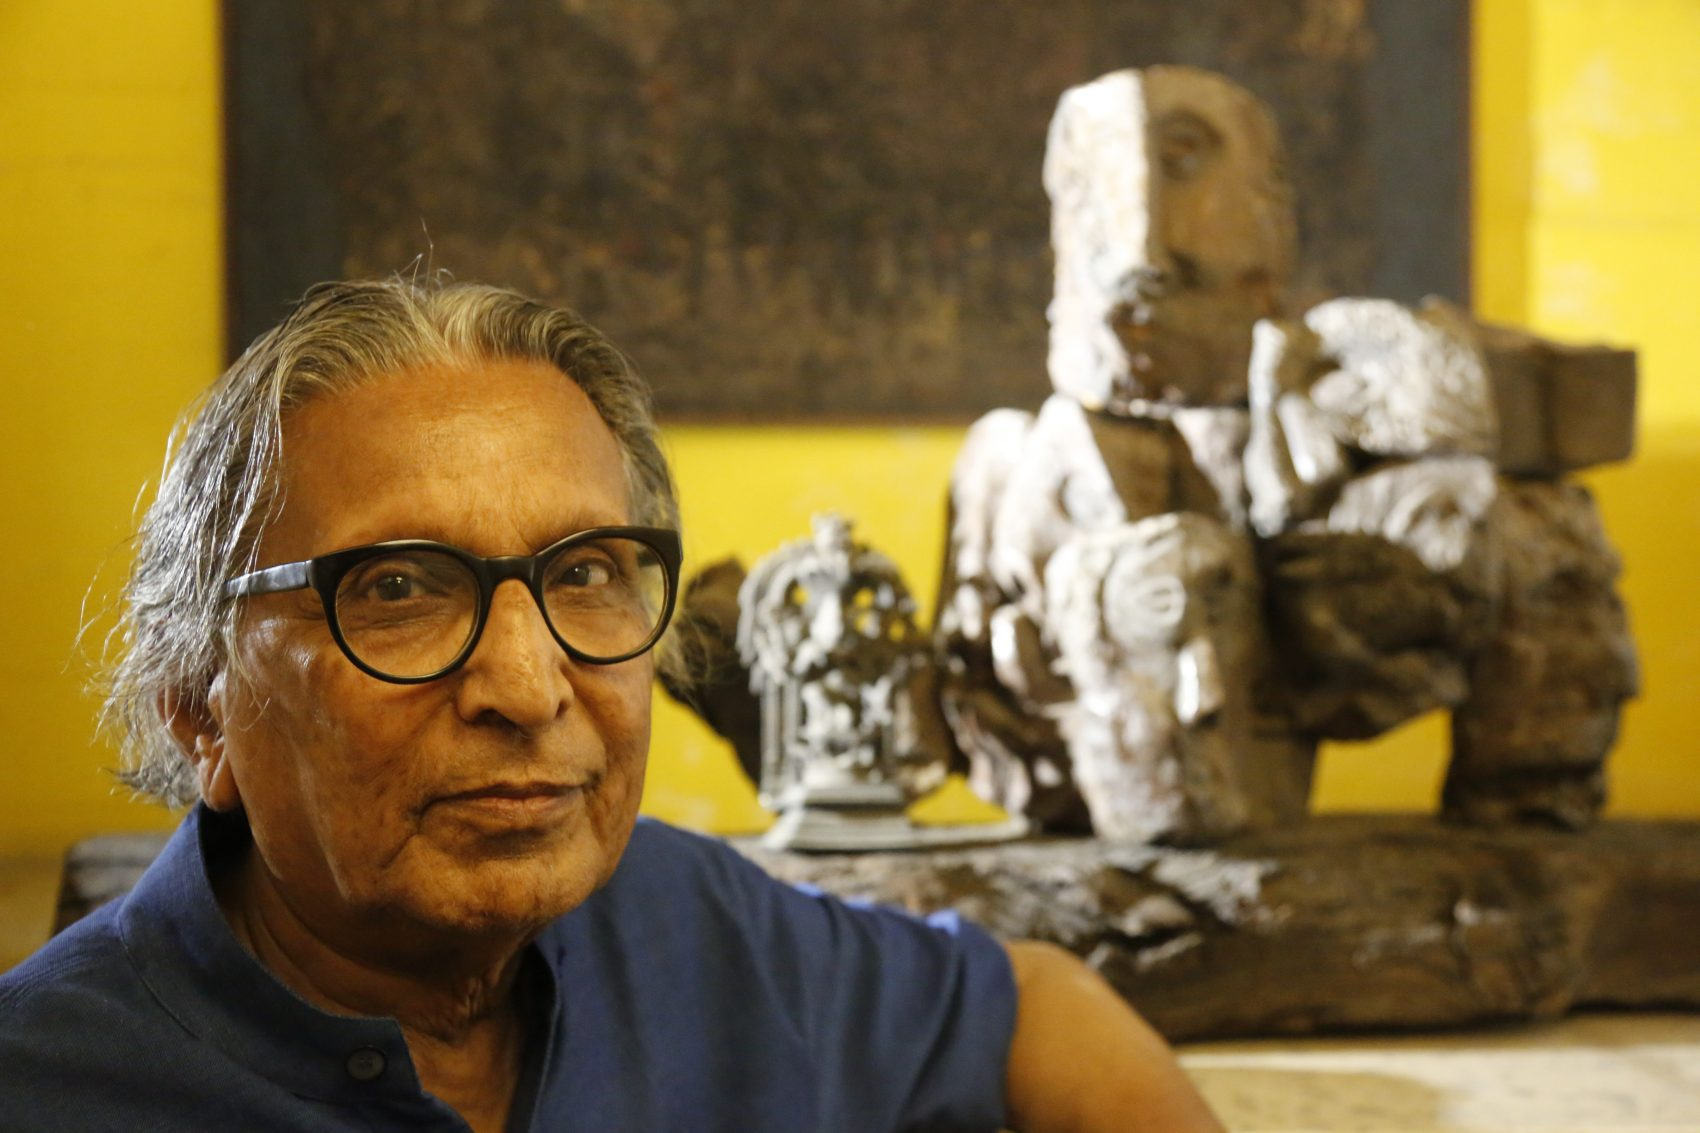 India's Balkrishna Doshi who won the 2018 Pritzker Architecture Prize poses for the Associated Press at his home in Ahmadabad, India, Wednesday, March 7, 2018. He is the first from India to win architecture's highest honor in the prize's 40-year history. The award was announced Wednesday by Tom Pritzker of the Chicago-based Hyatt Foundation. (Ajit Solanki/AP)